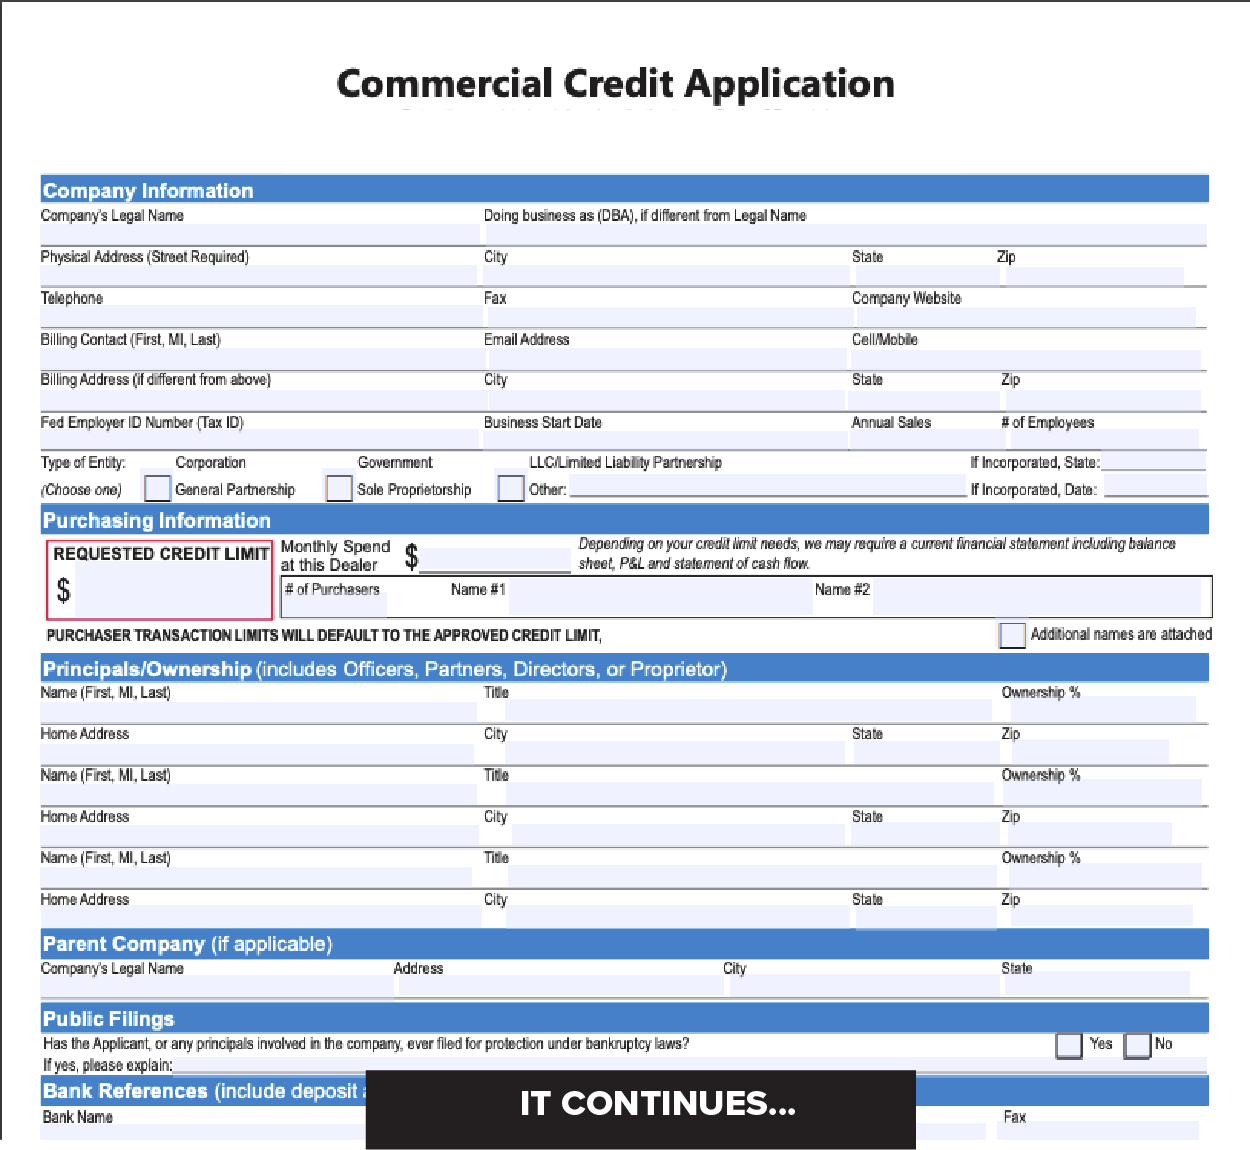 Credit Application for a business